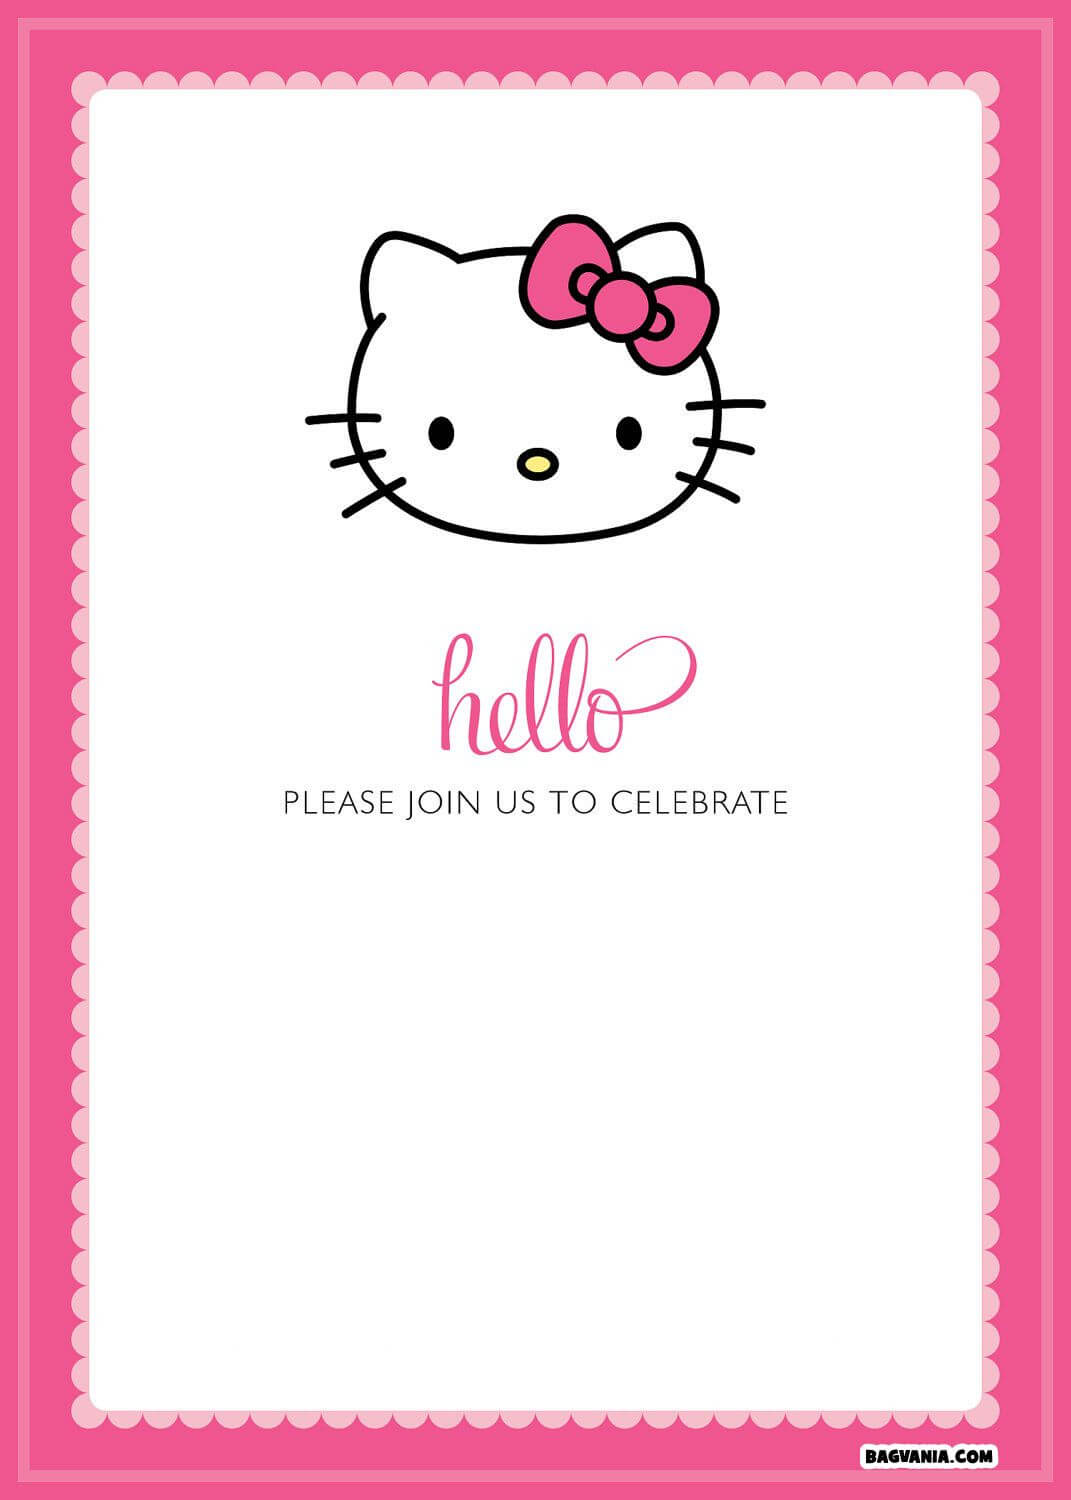 Free Printable Hello Kitty Birthday Invitations – Bagvania regarding Hello Kitty Birthday Card Template Free